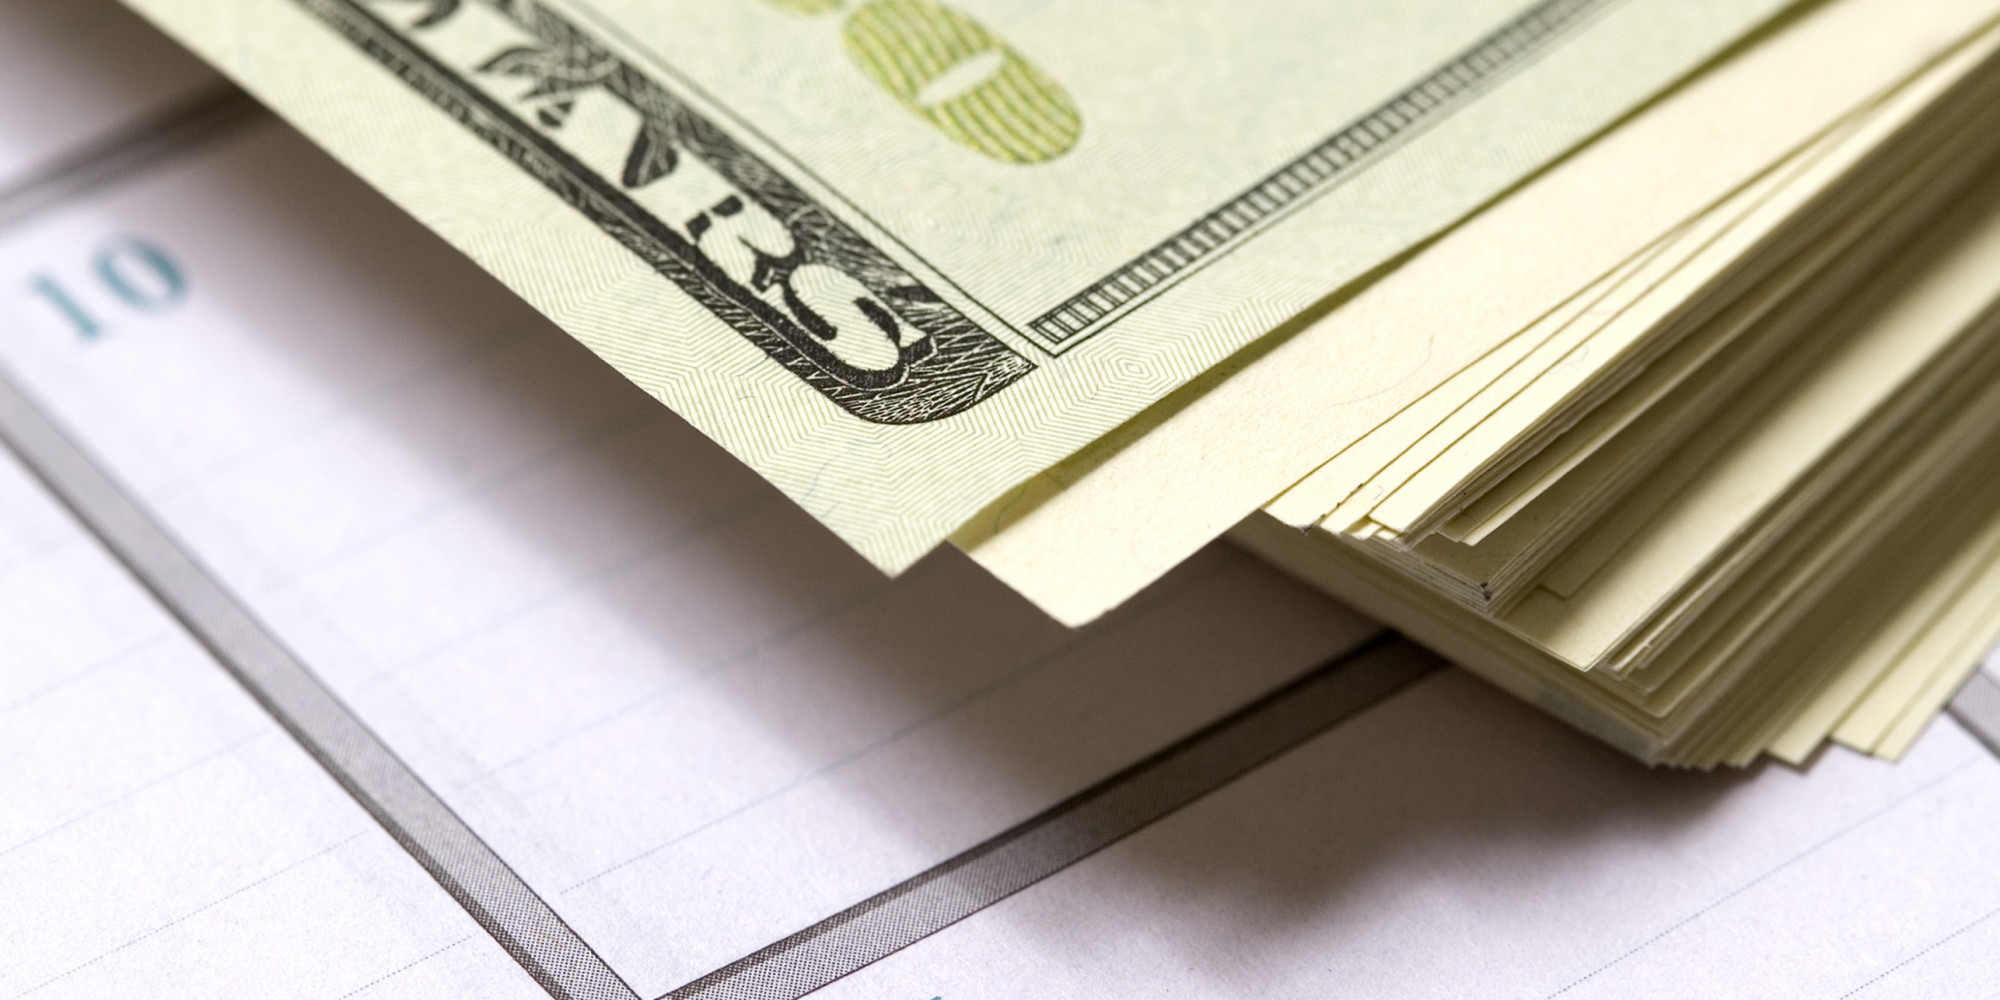 paid biweekly heres how you should budget huffpost